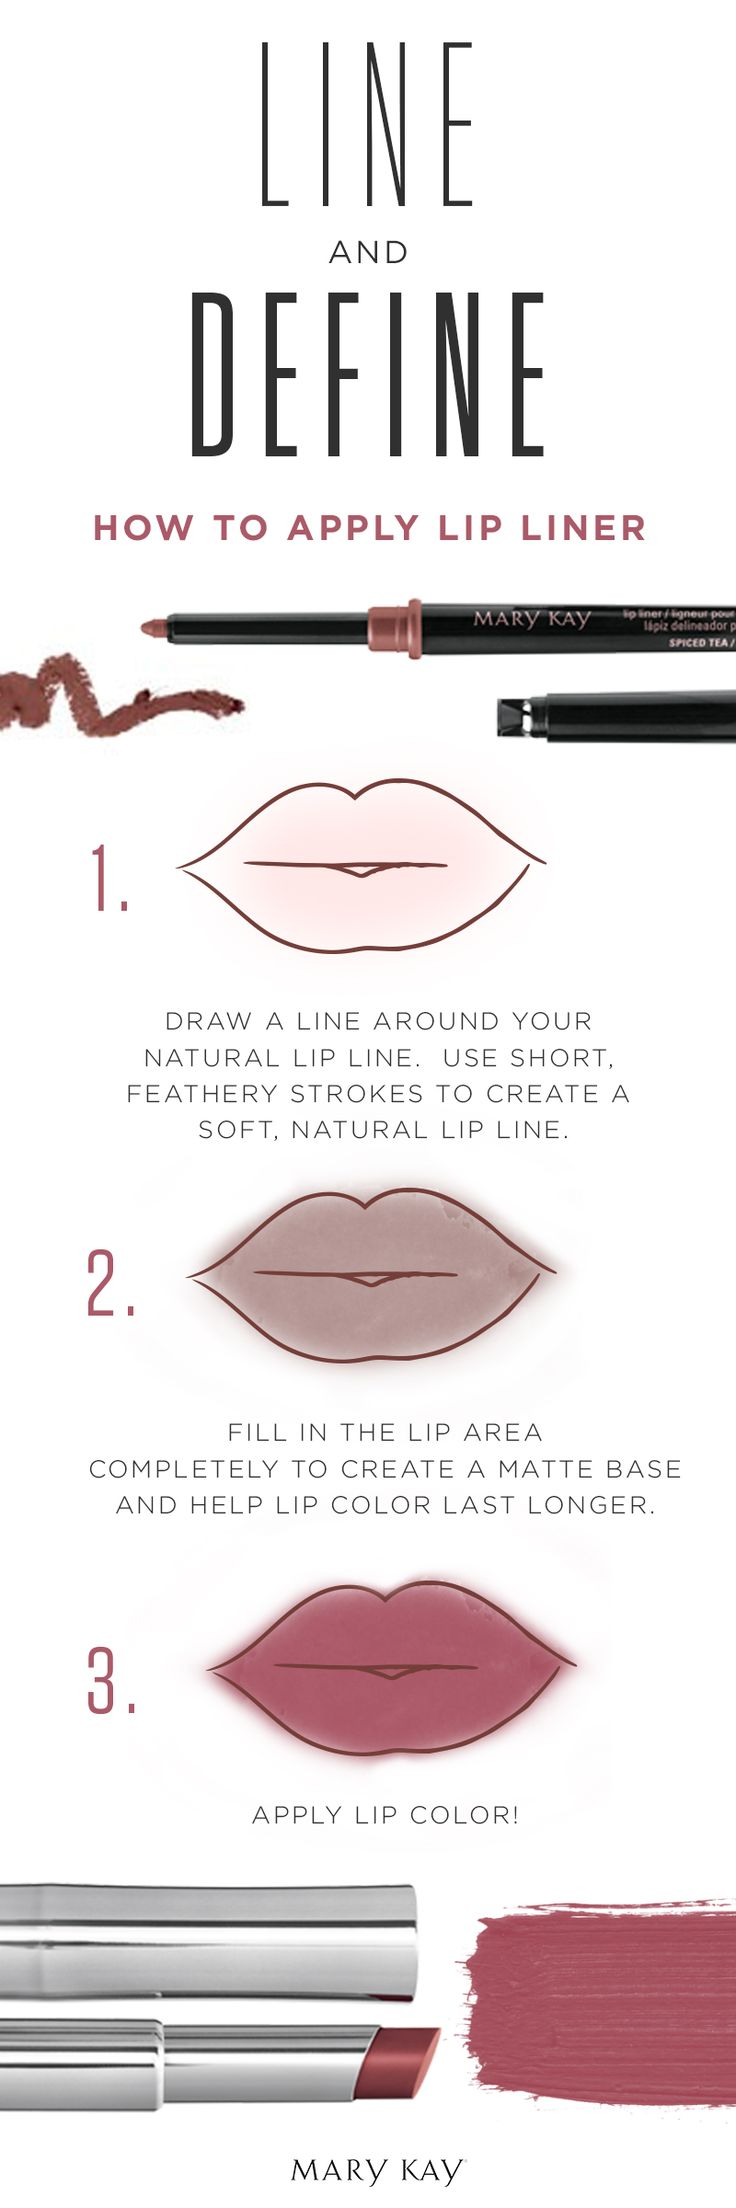 Applying the perfect lip liner is easy than you think with these beauty tips and tricks! To help lip color last longer, completely fill in your lips with liner before applying lipstick. You can also skip the lipstick and wear just the lip liner! | Mary Kay